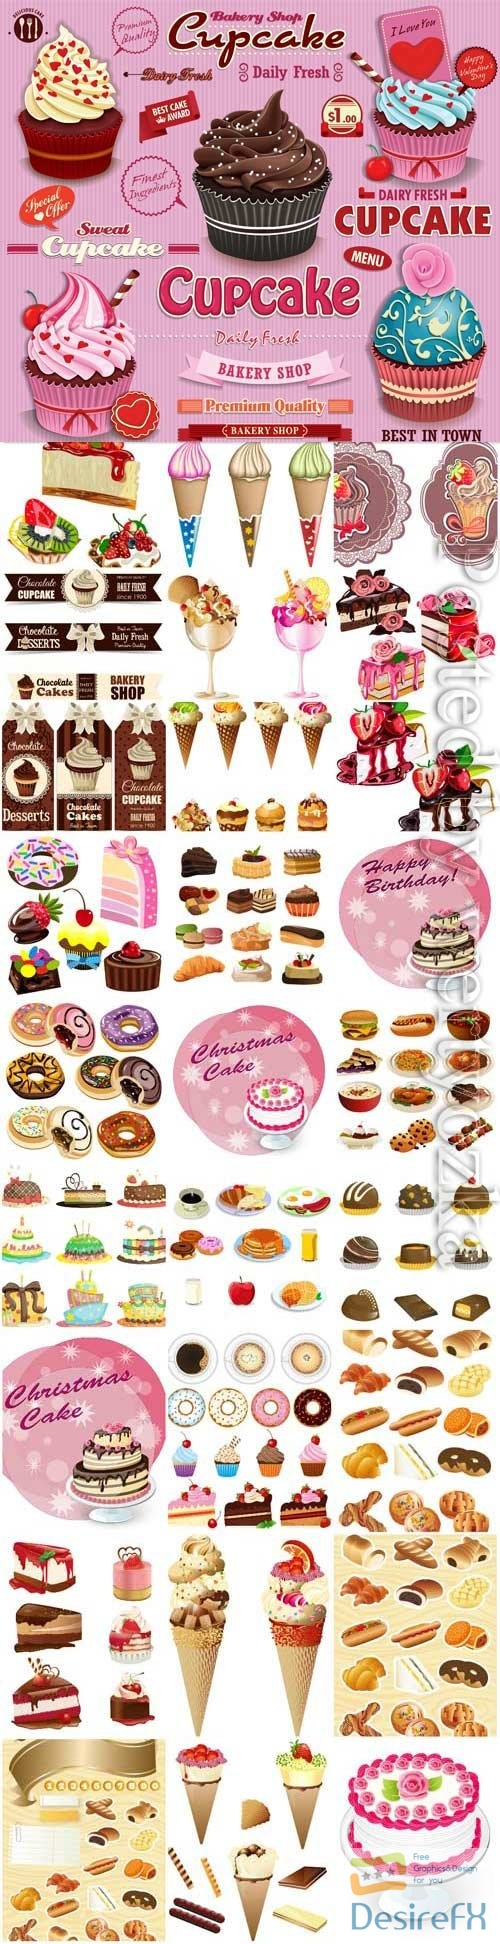 Desserts, ice cream cakes and various sweets in vector